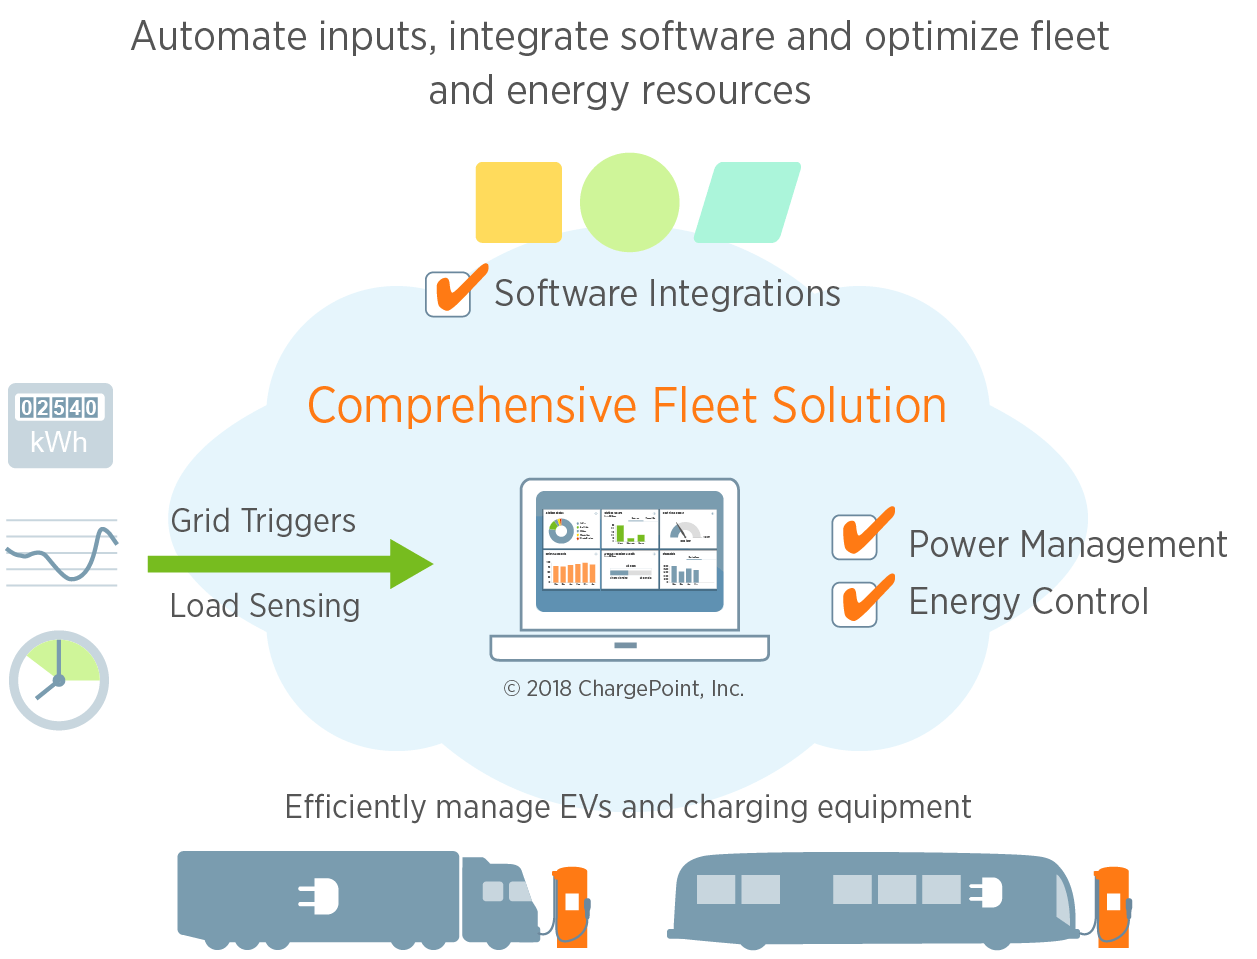 ChargePoint Acquires Fleet Energy Solutions Leader, Kisensum